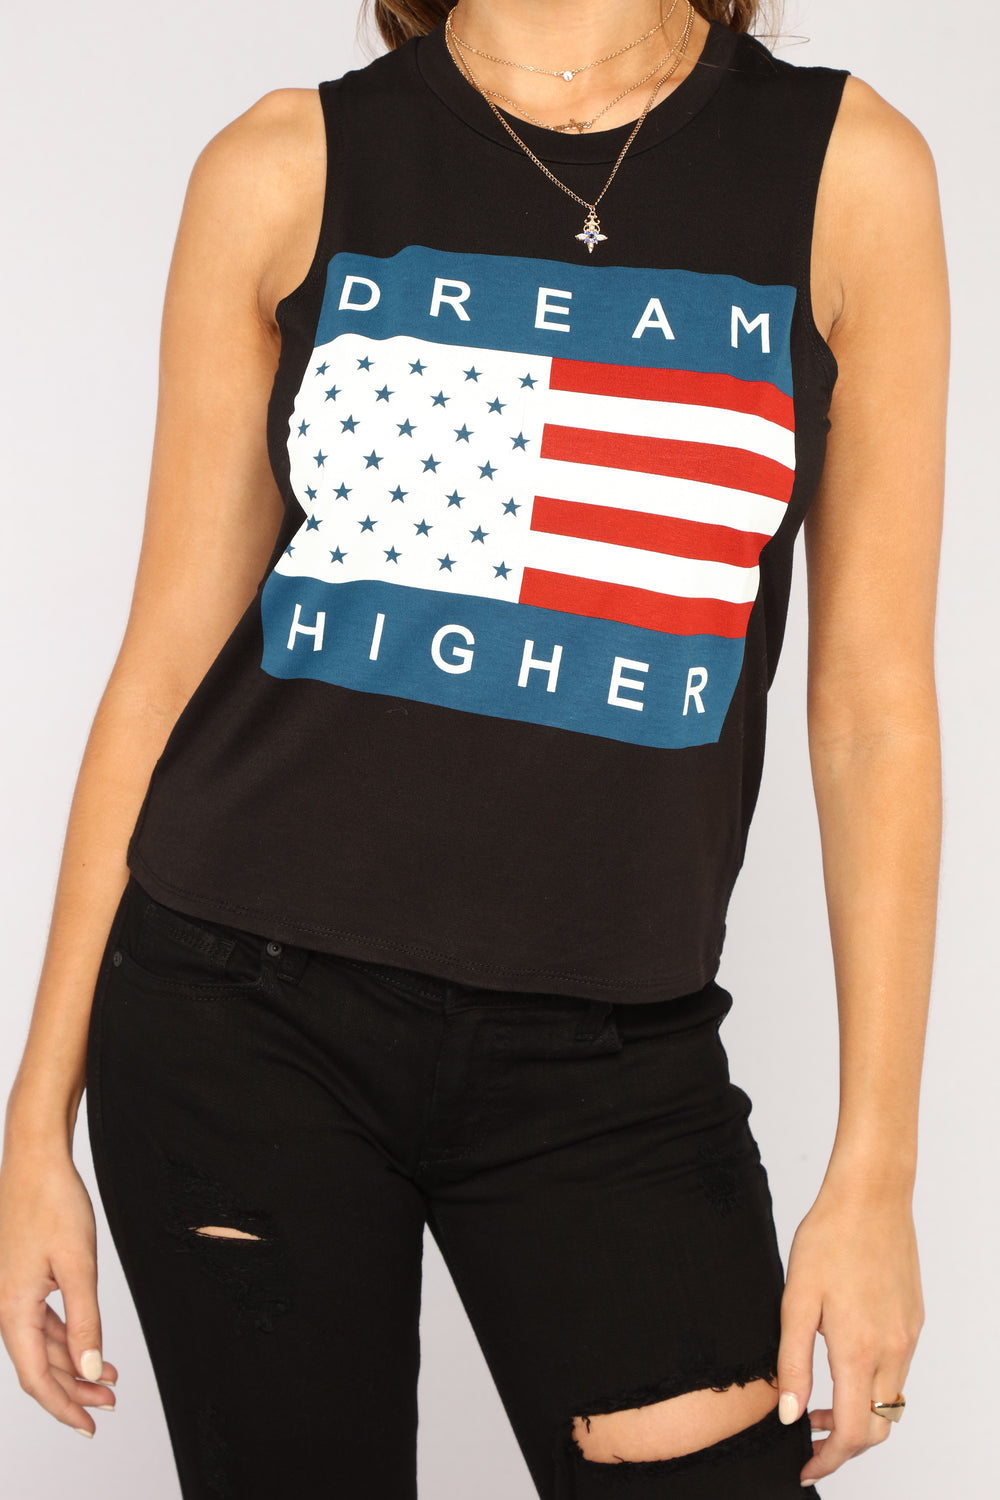 A Girl With Big Dreams Tee - Black